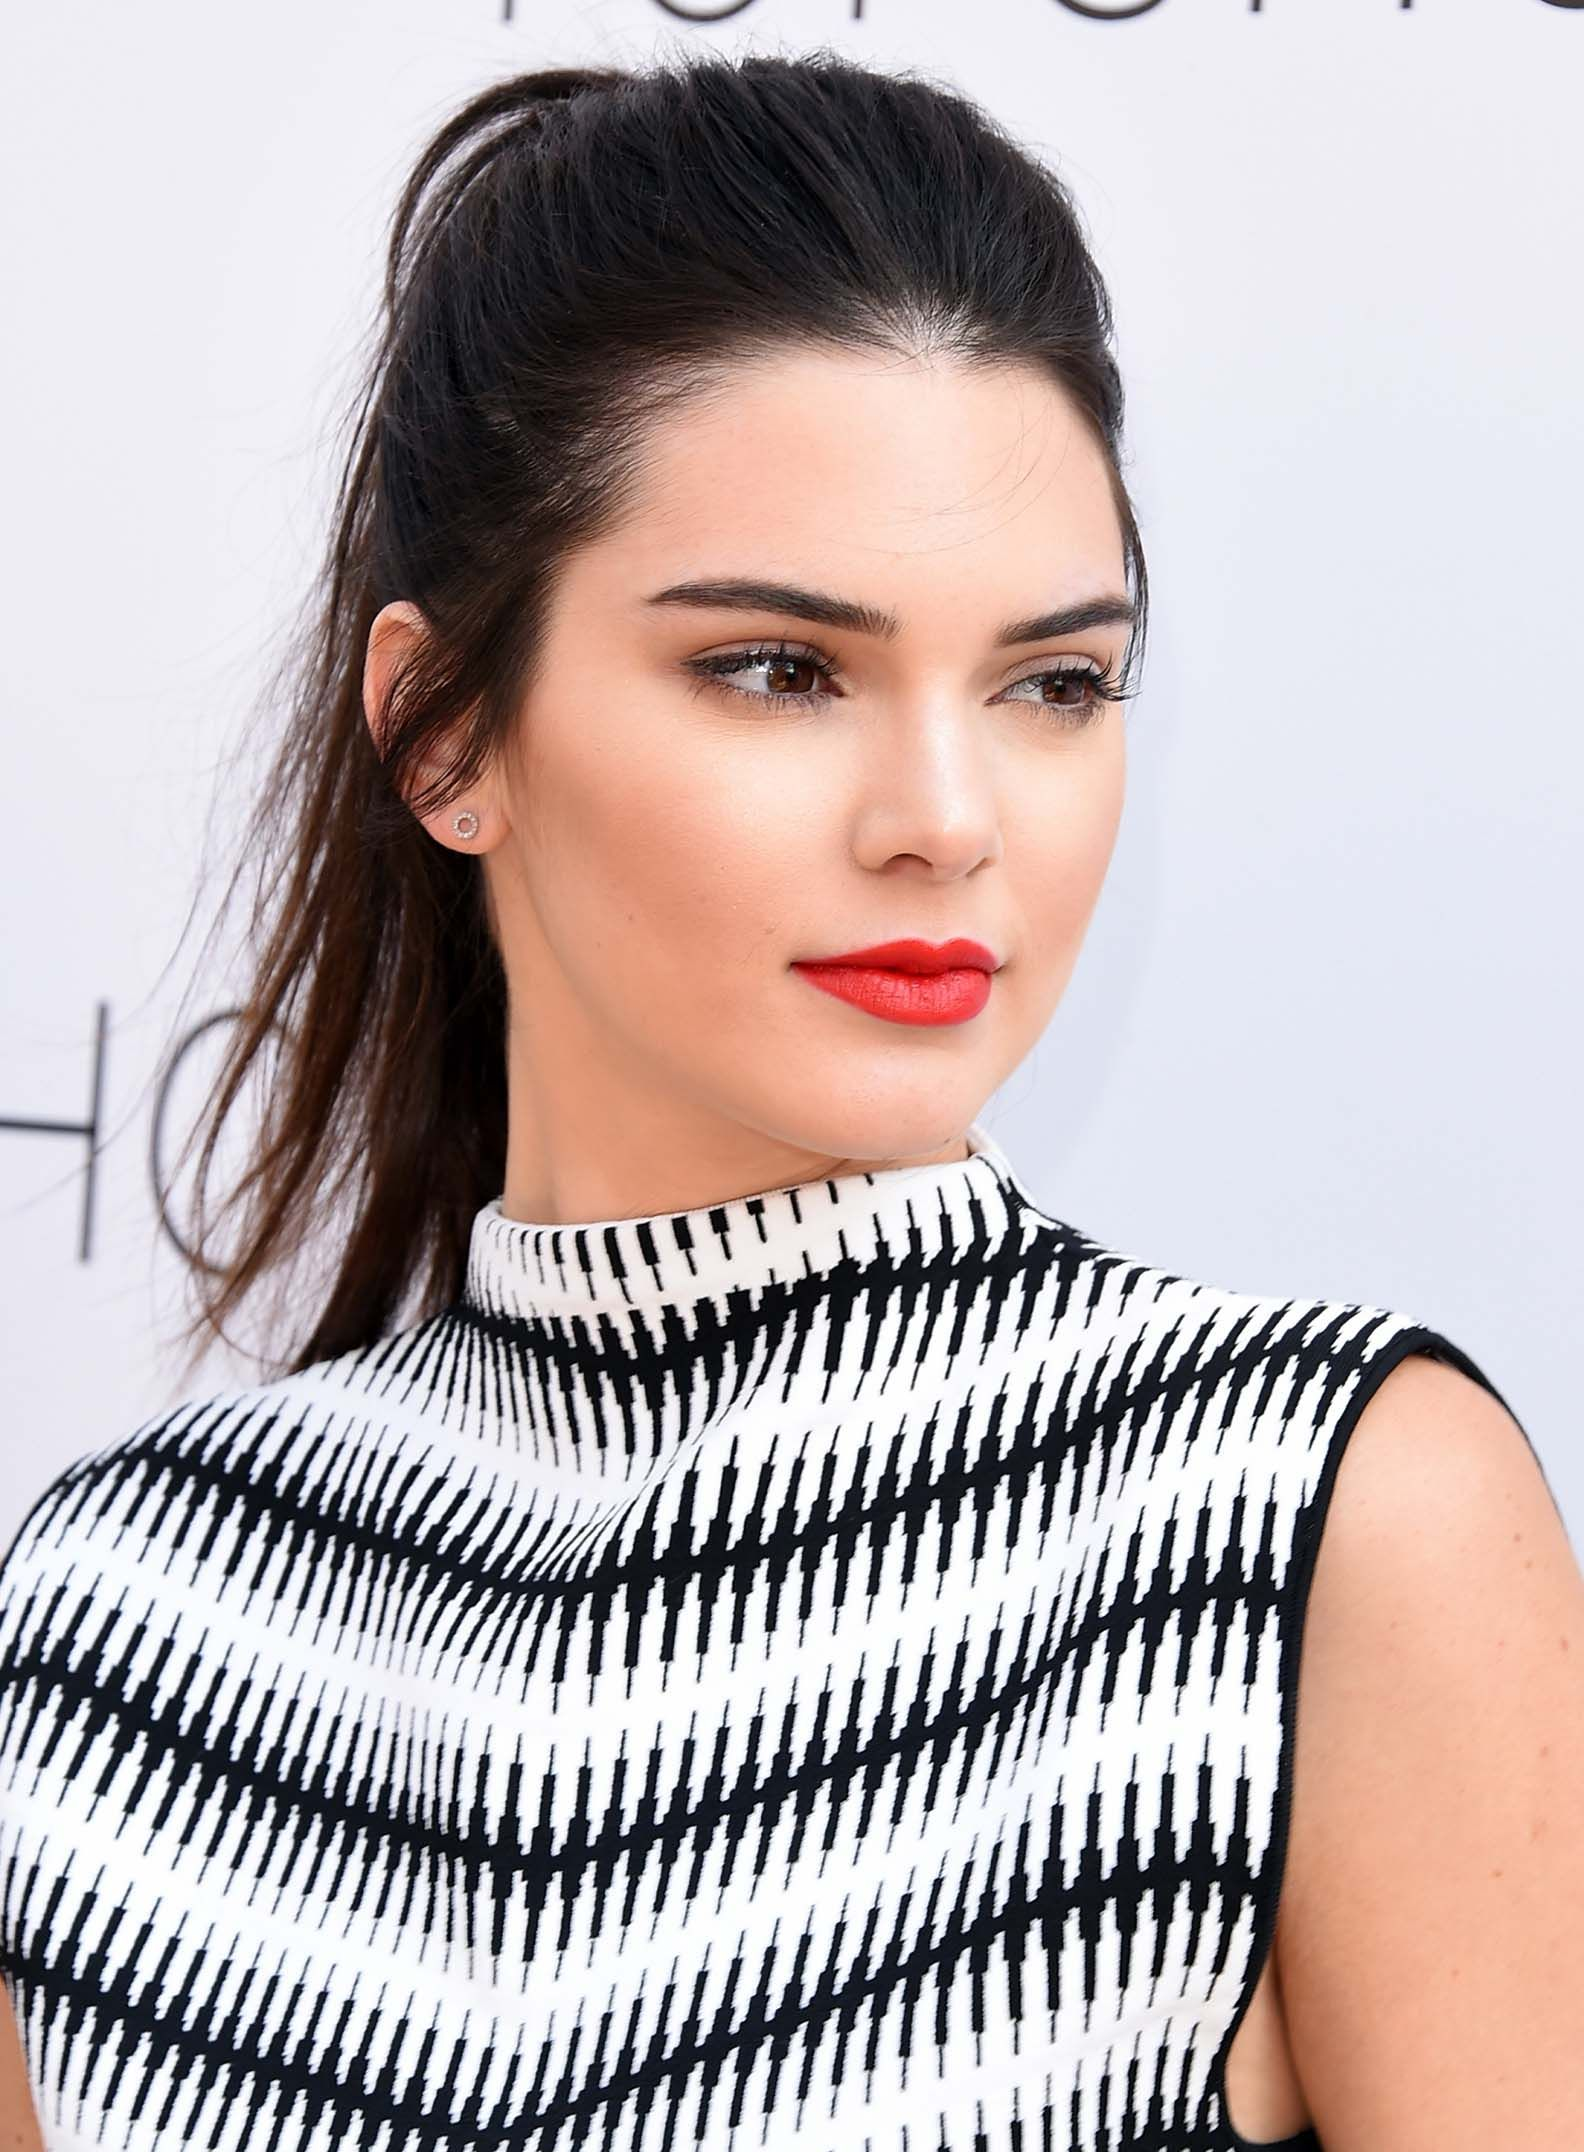 Kendall jenner iphone wallpaper tumblr - Kendall Jenner Attractive Wallpapers Hd 1080p